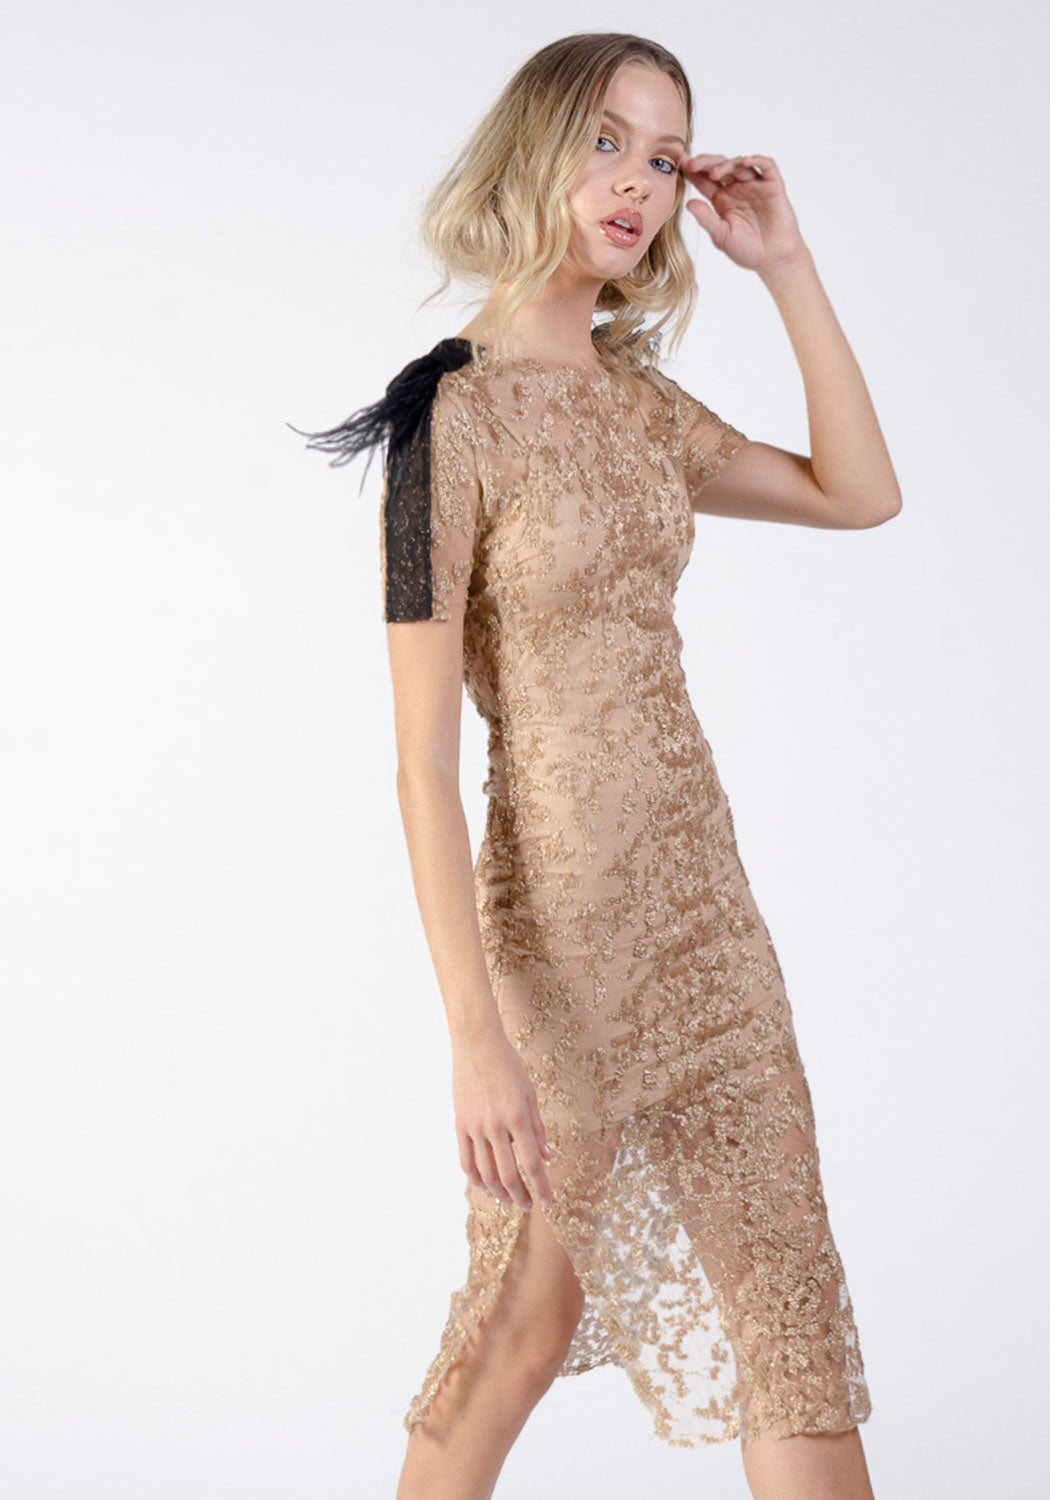 BACALL Lace Nude Sequin Cocktail Dress